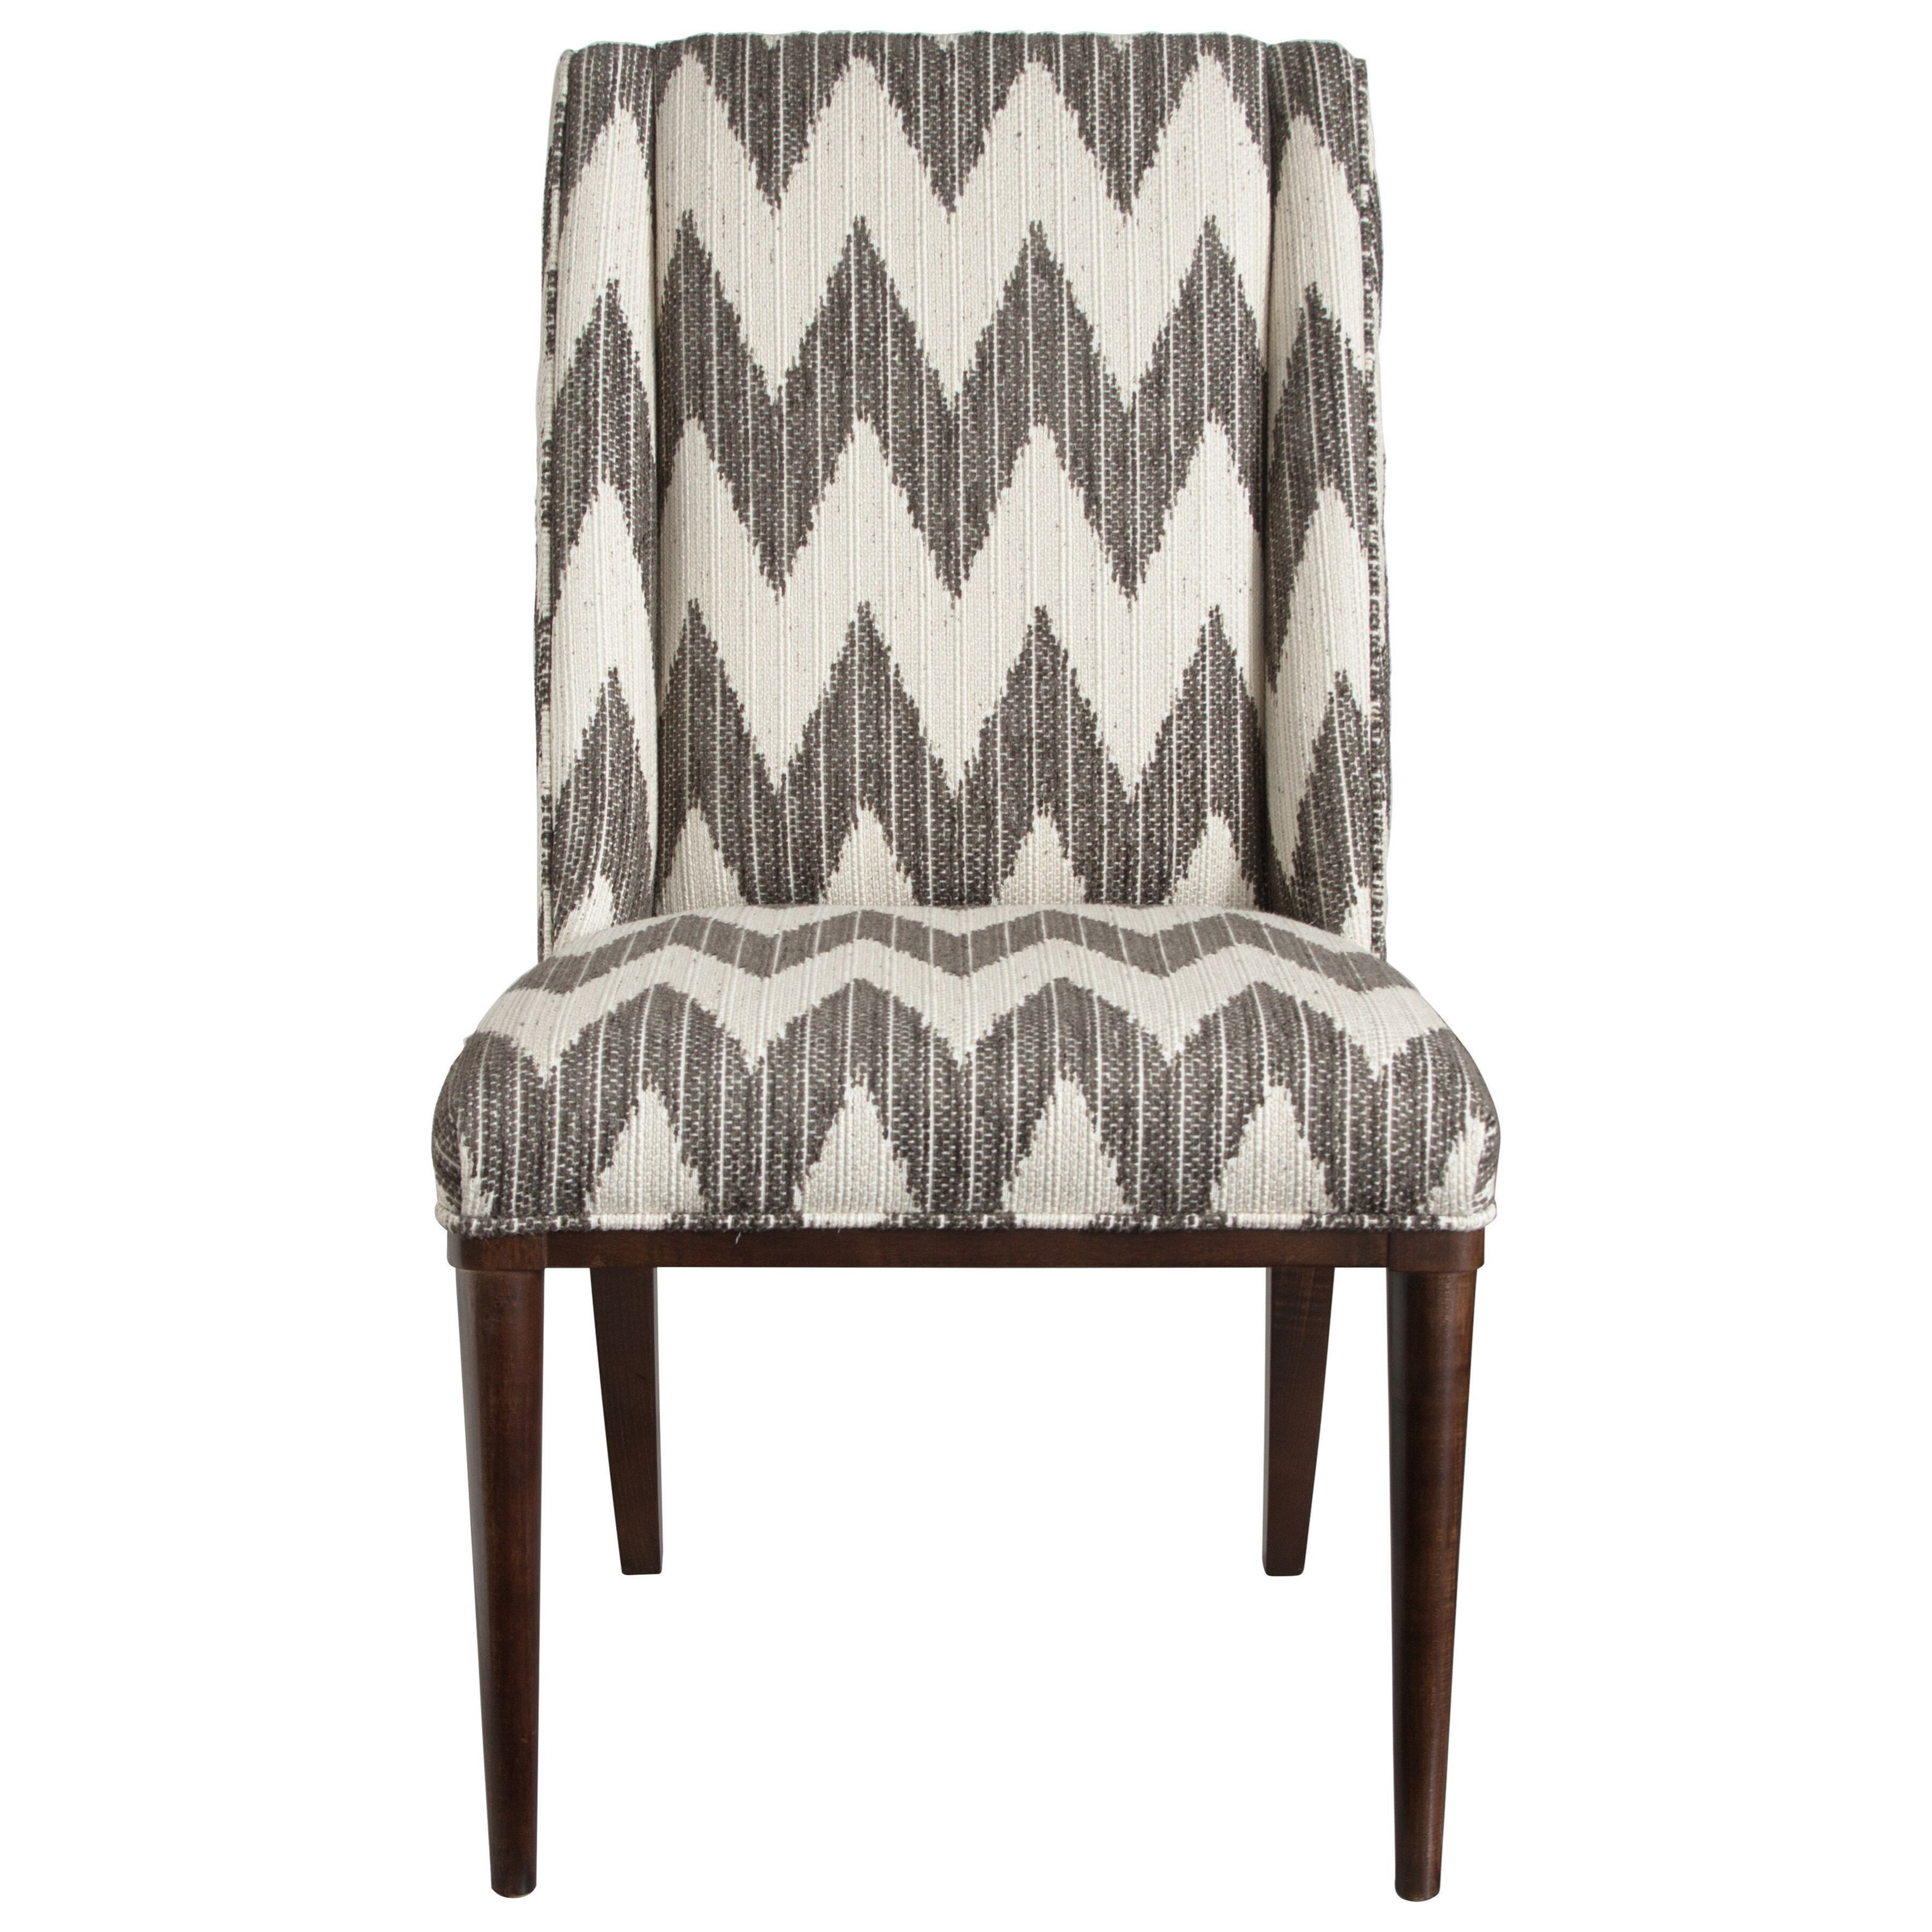 Ainsley Side Chair by Bassett at Williams & Kay